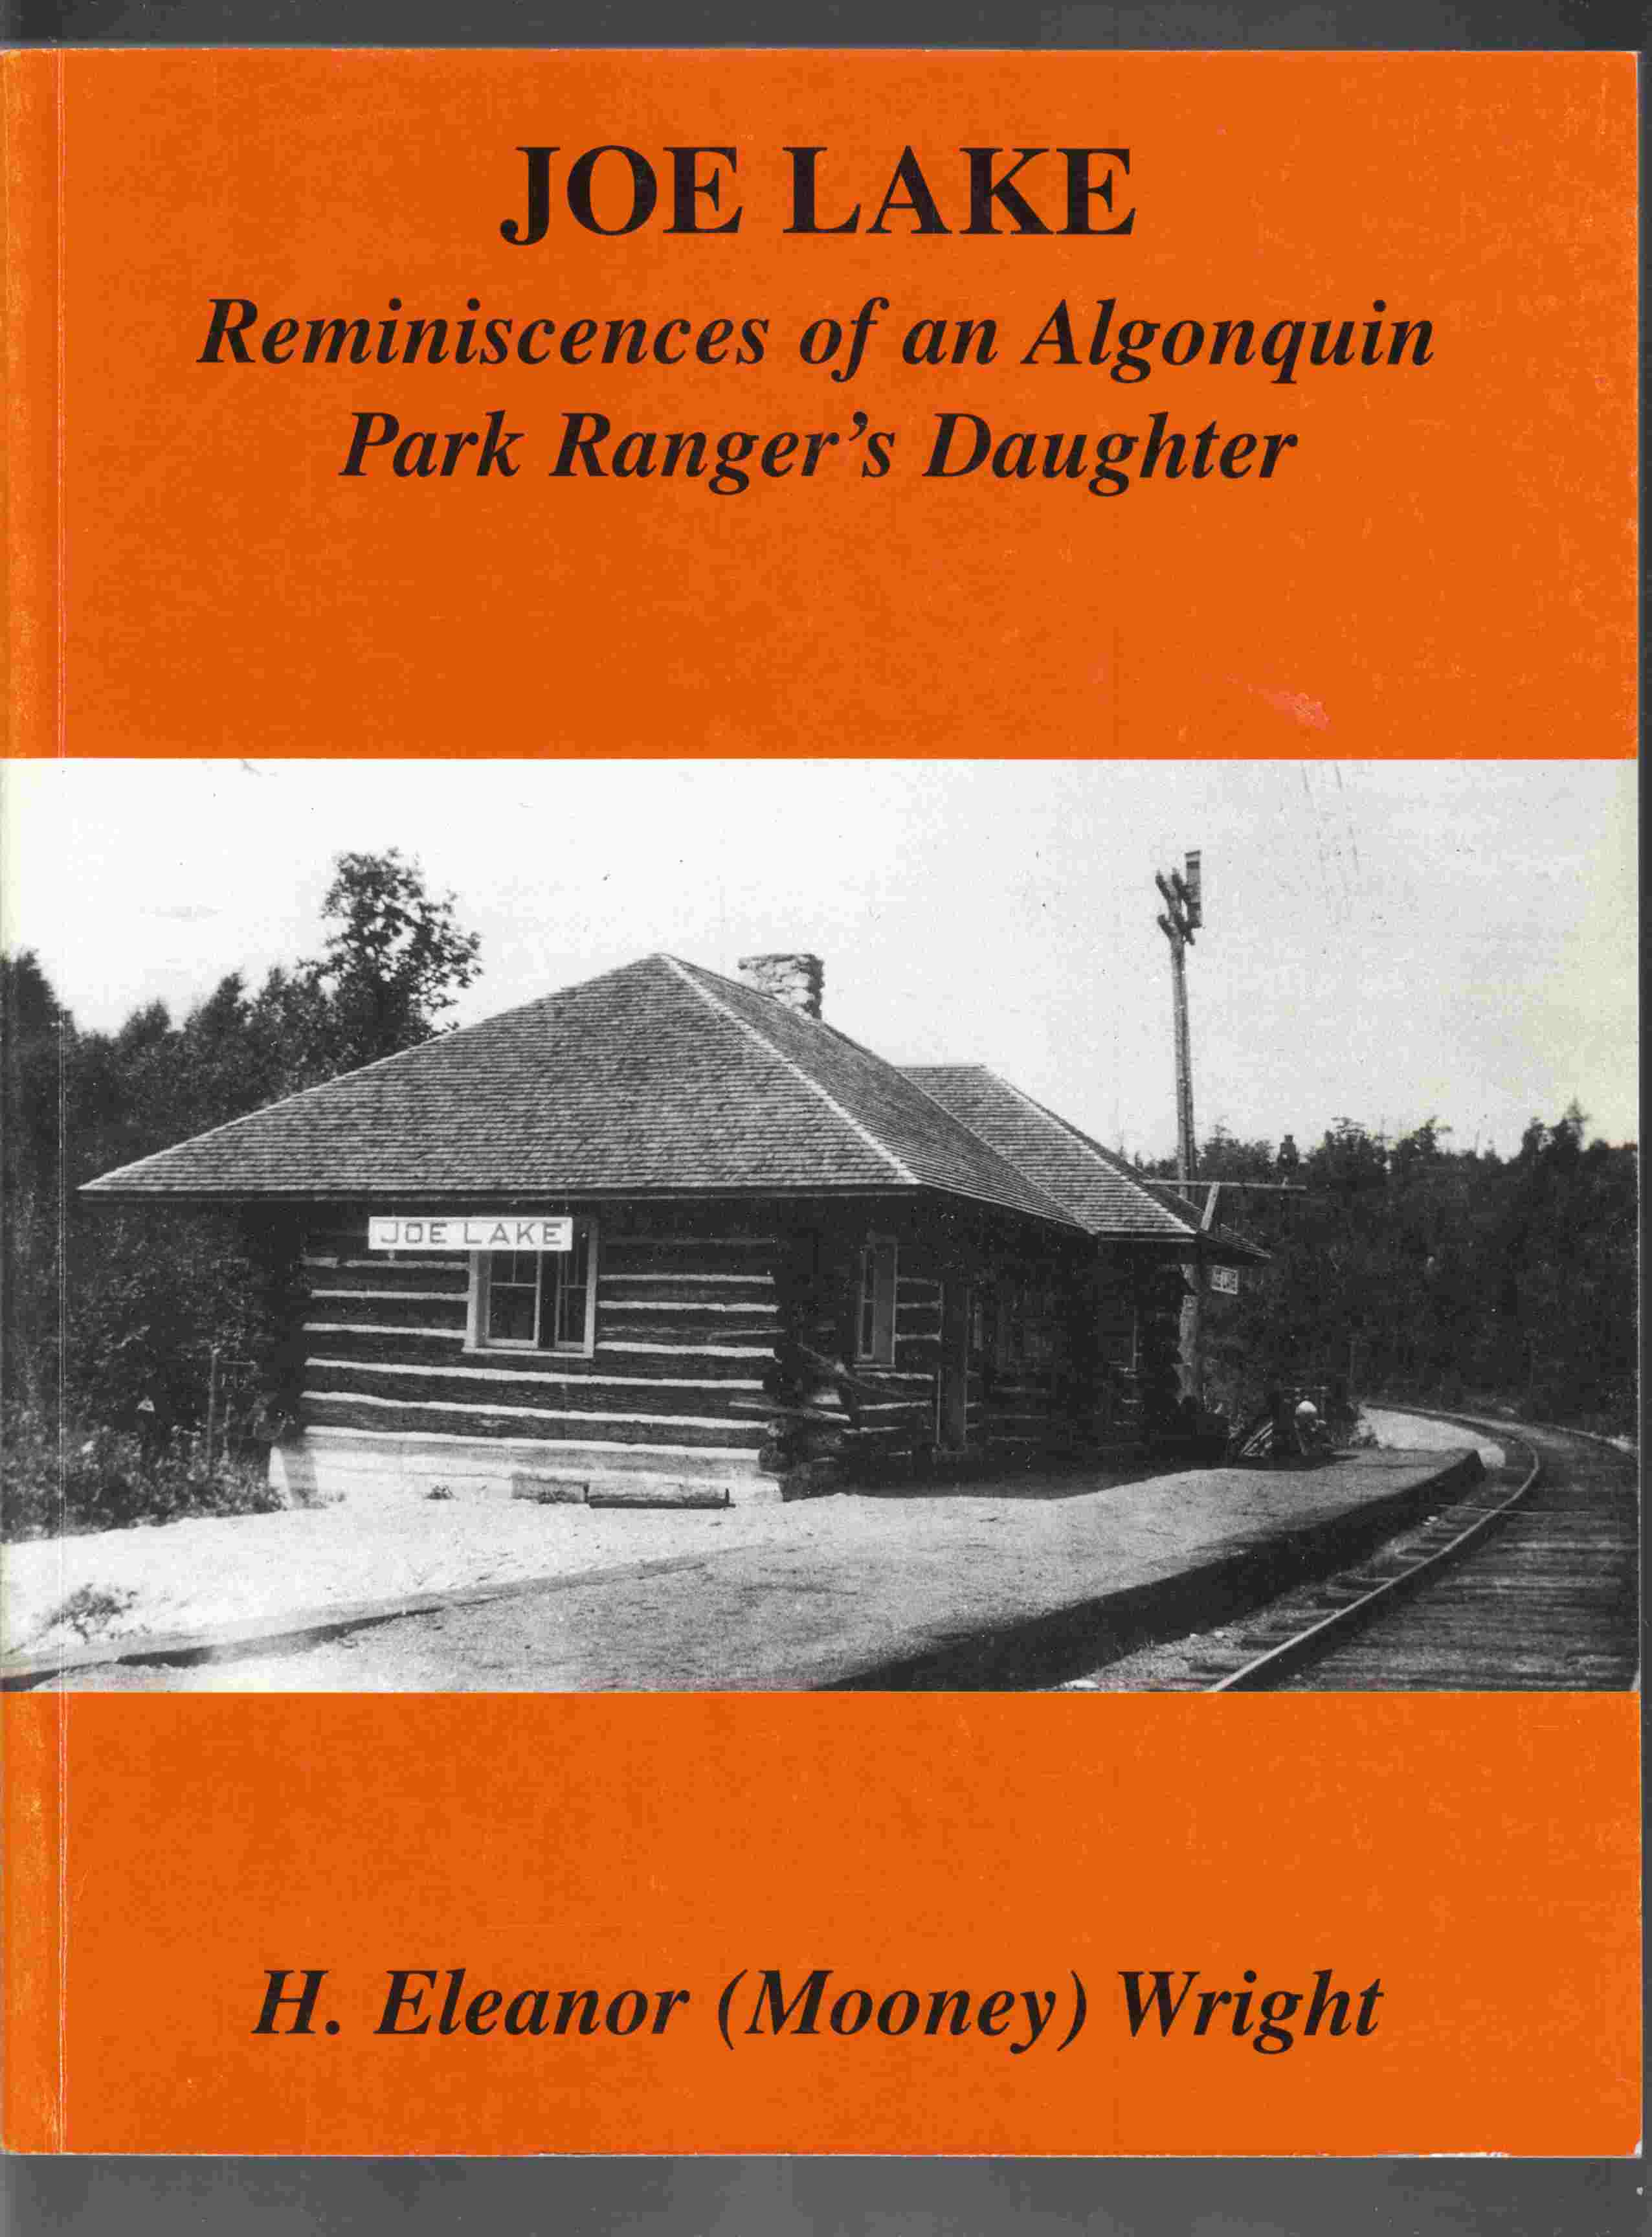 Image for Joe Lake Reminiscences of an Algonquin Park Ranger's Daughter